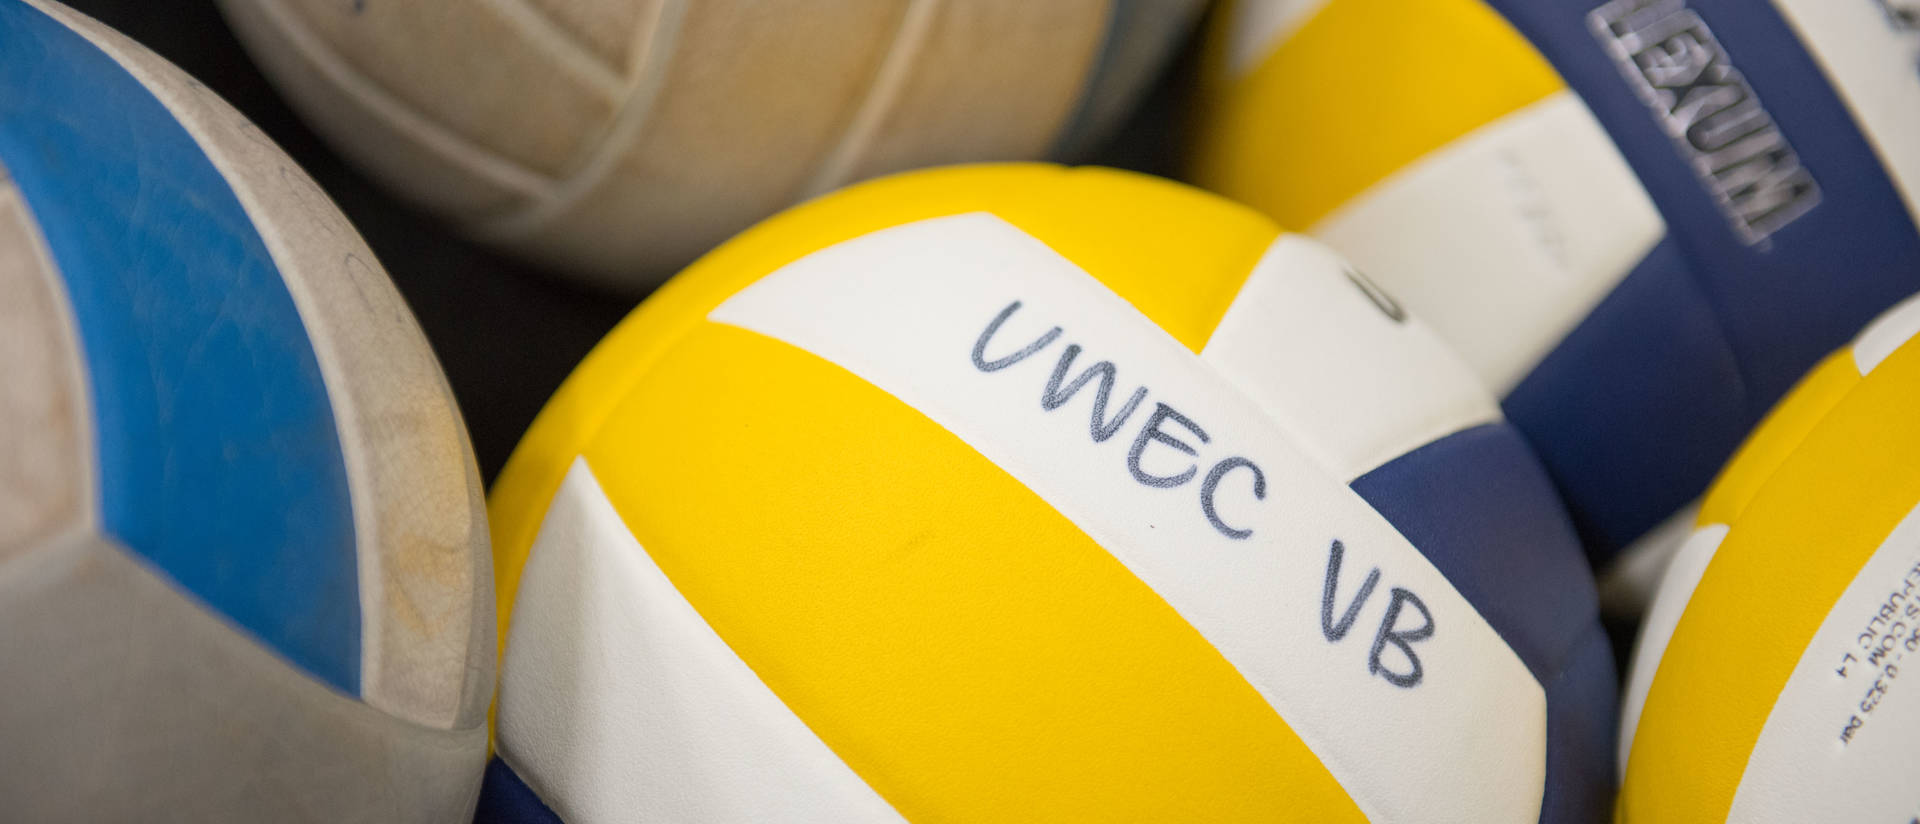 Pile of UWEC colored volleyballs